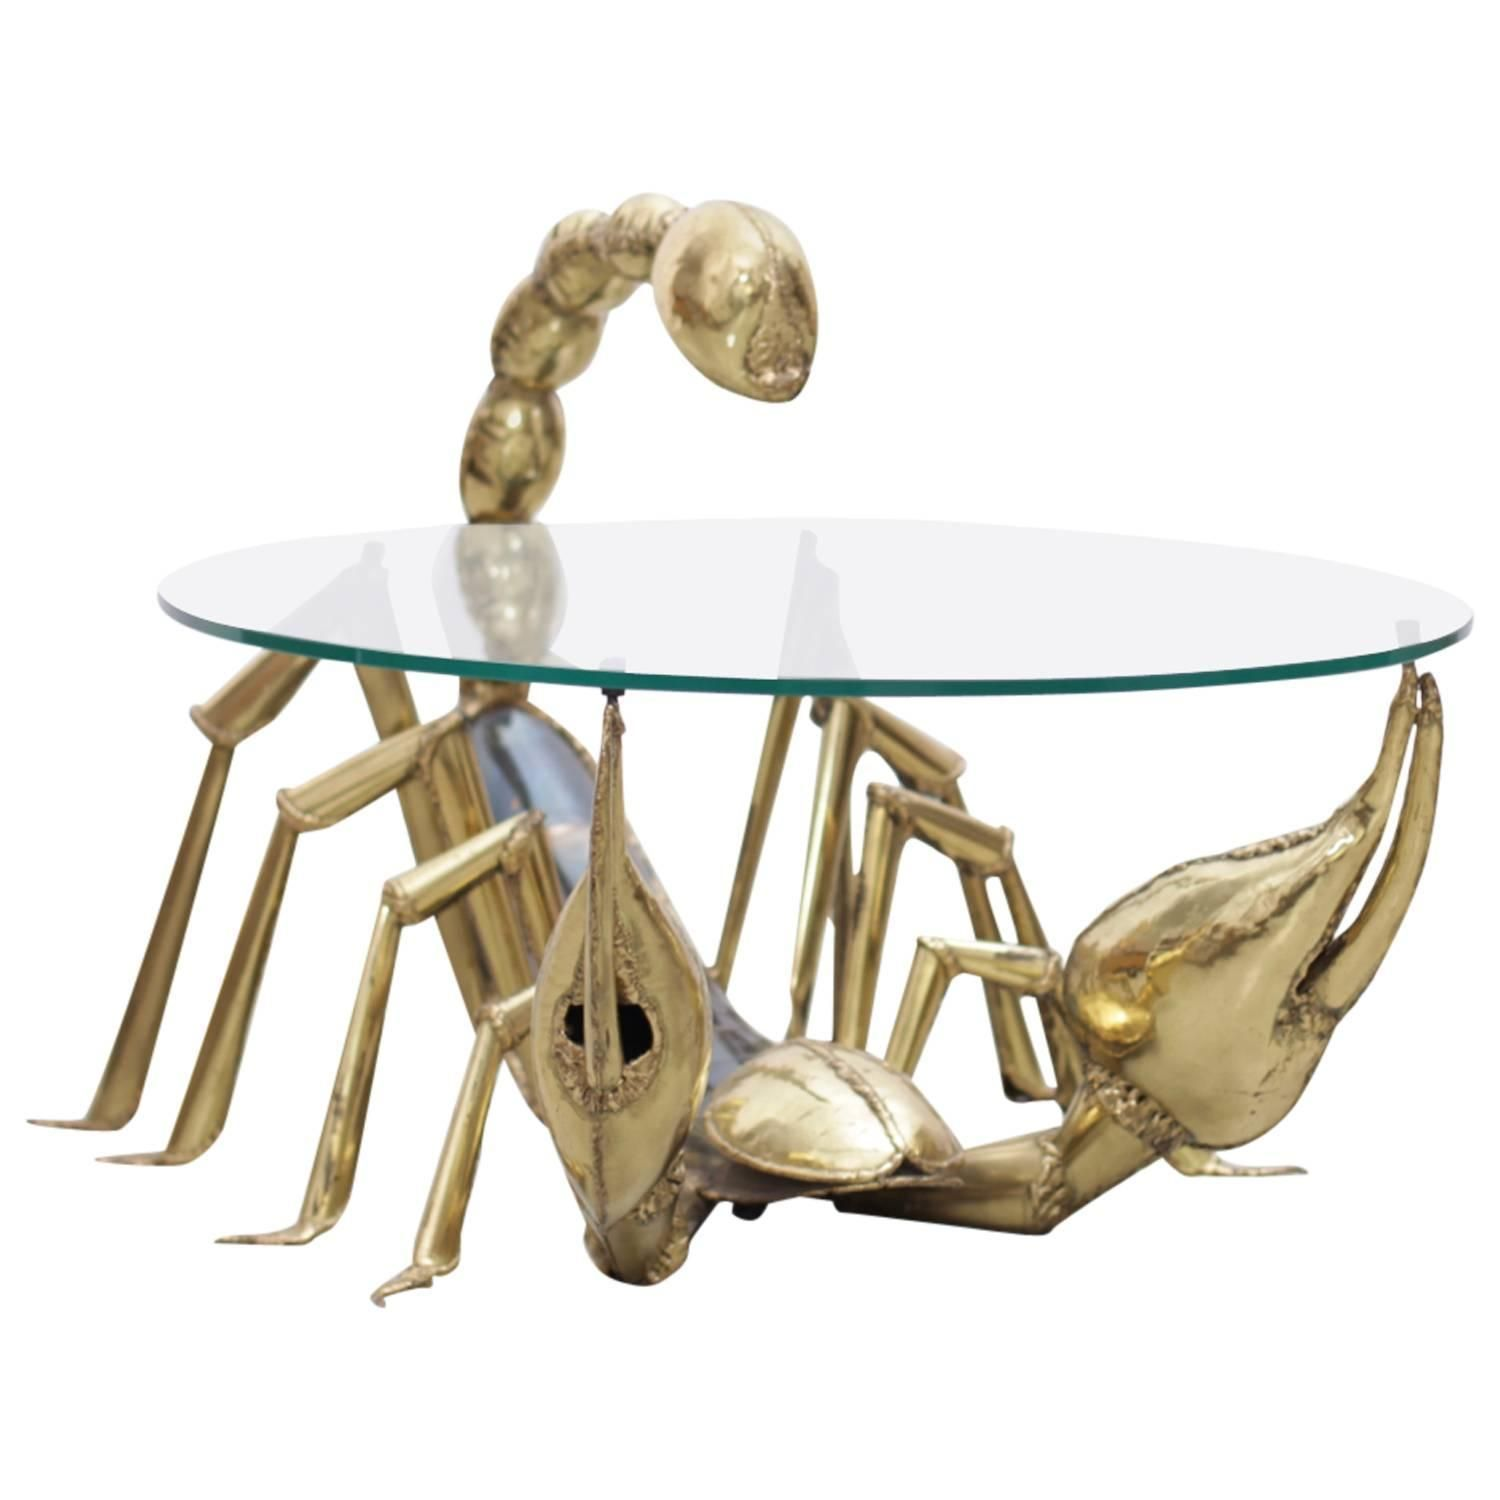 Rare Illuminated Brass Scorpion Coffee Table by Jacques Duval